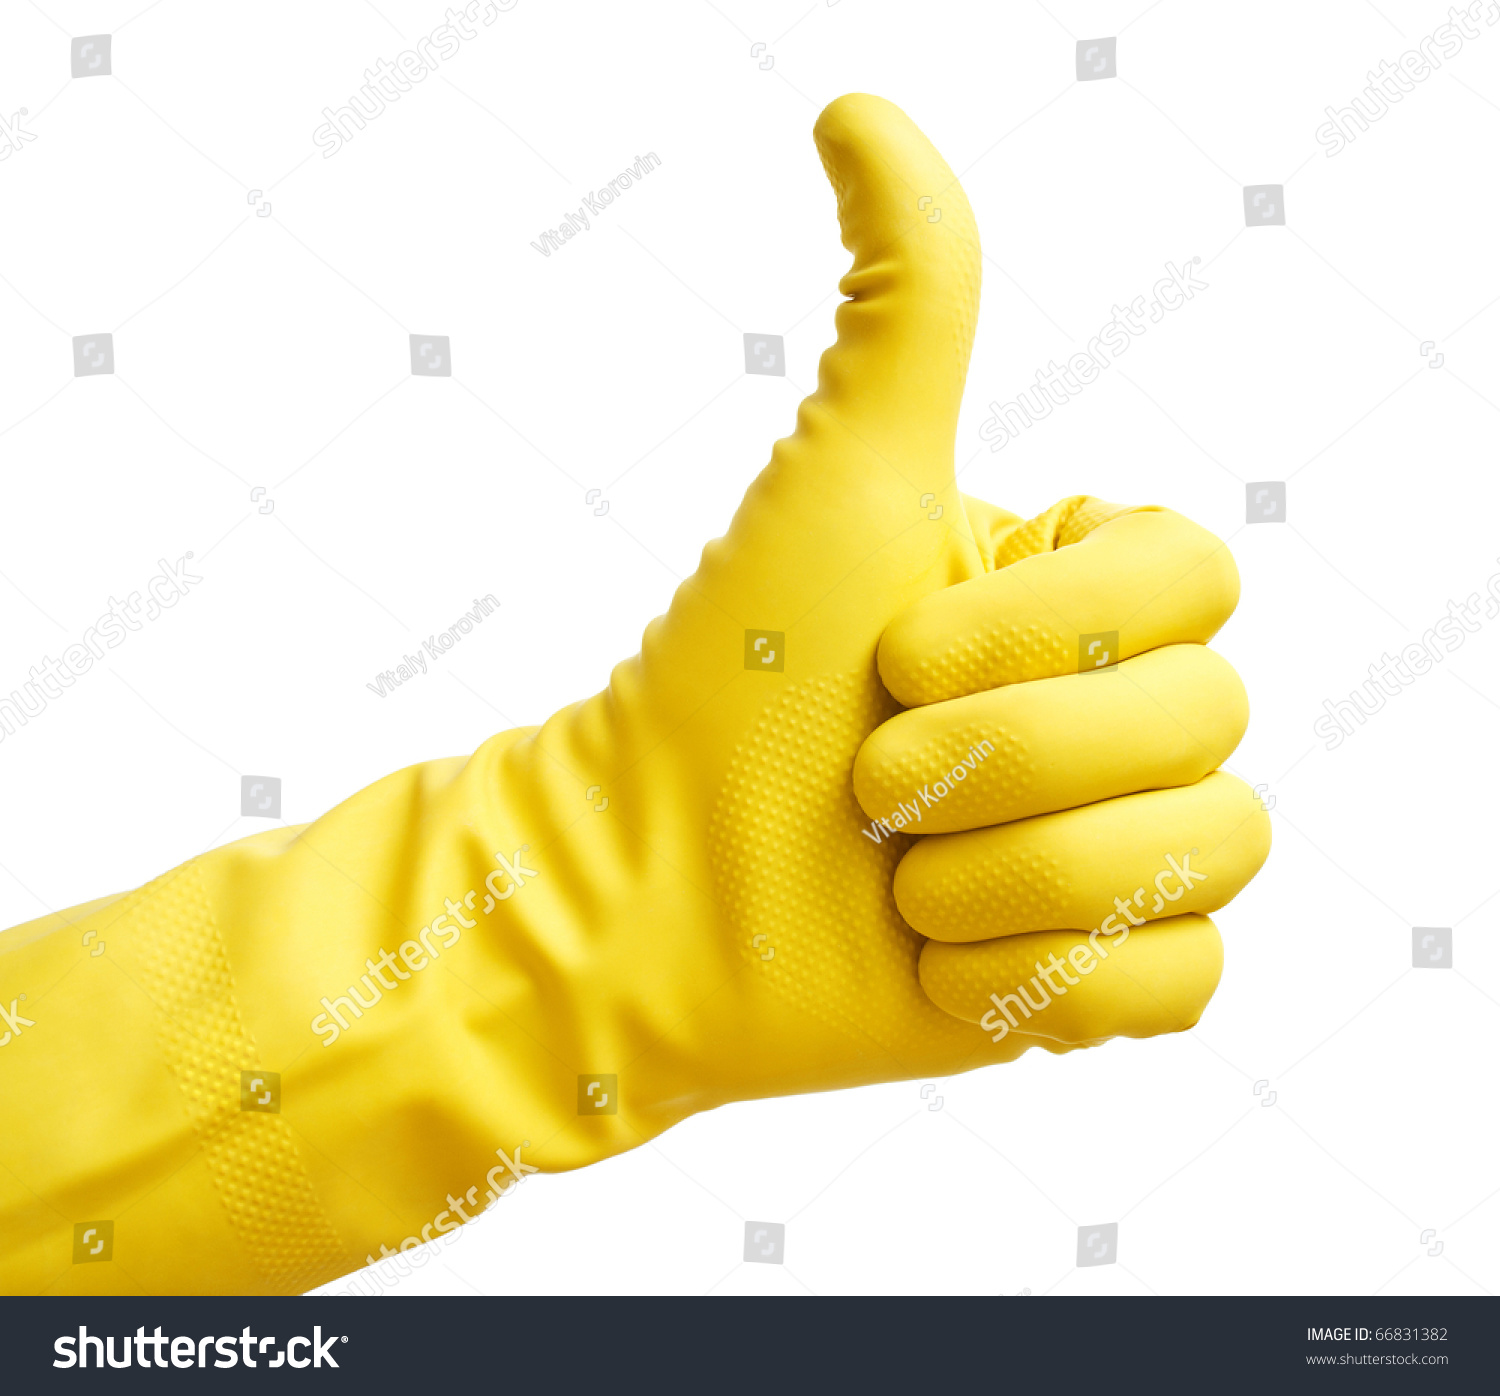 thumbs up with a yellow vinyl glove stock photo 66831382 shutterstock. Black Bedroom Furniture Sets. Home Design Ideas